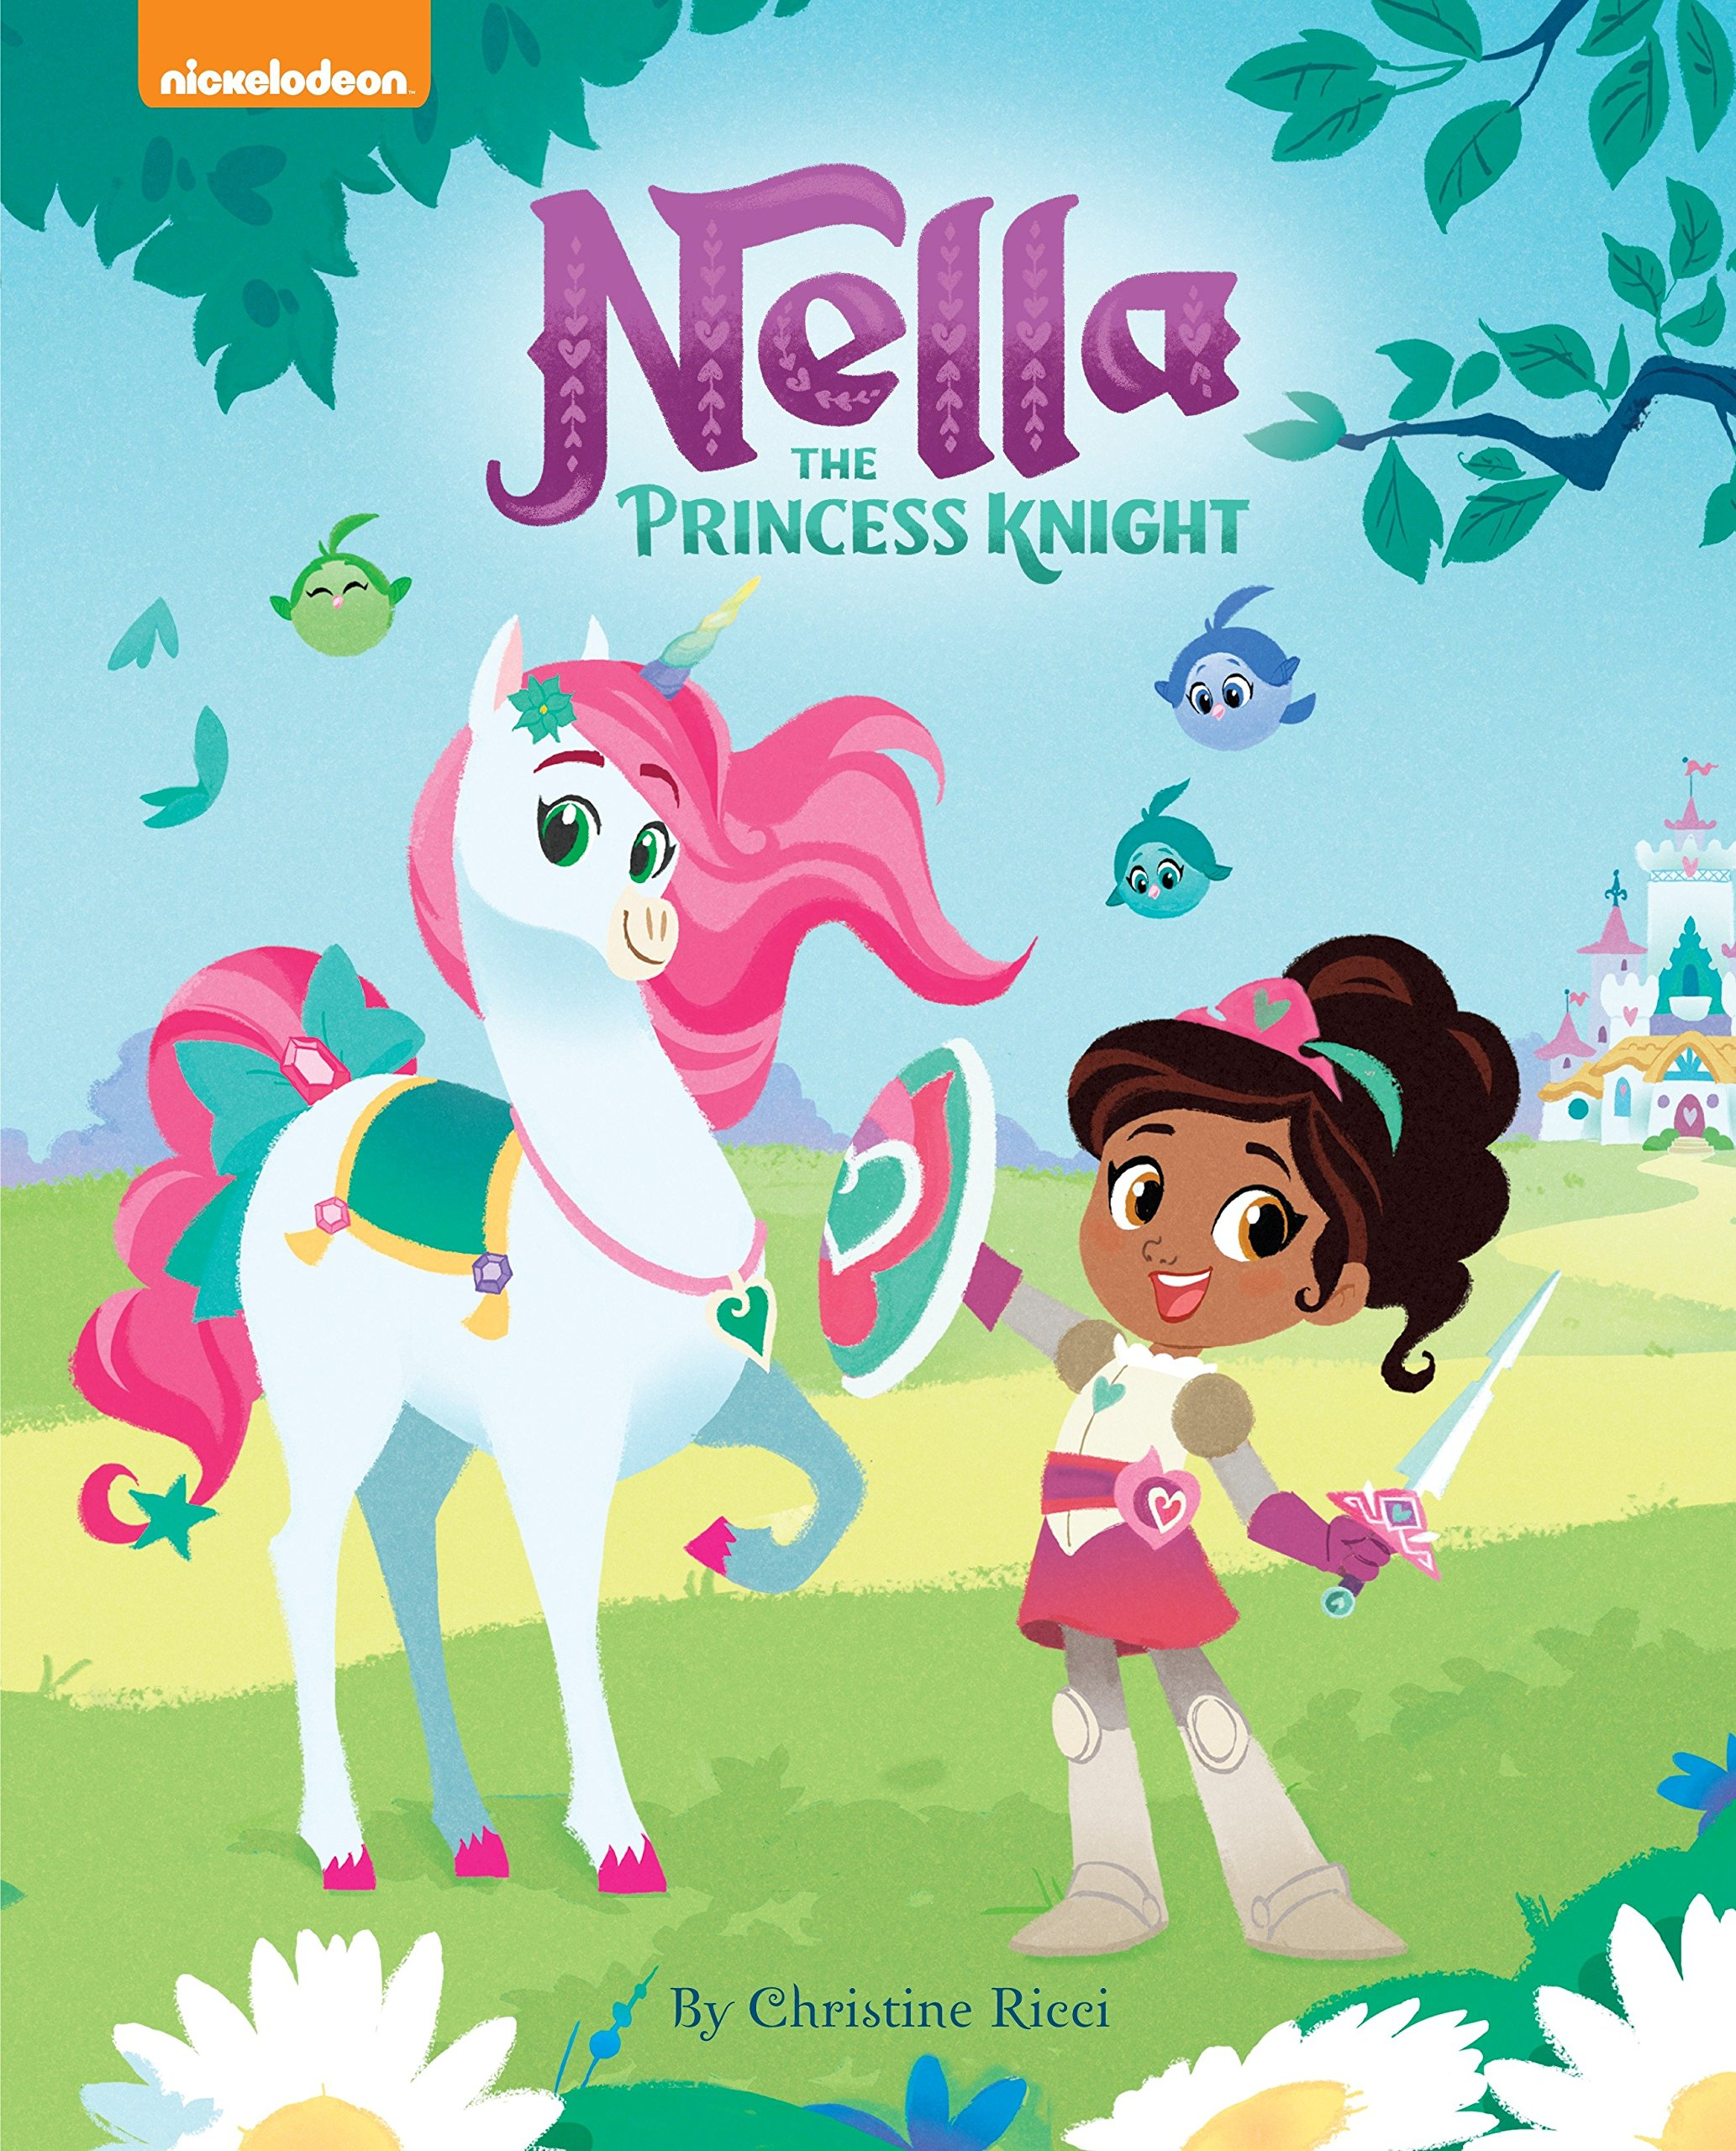 nella the princess knight nella the princess knight christine ricci alessandra sorrentino 9781524718756 amazoncom books